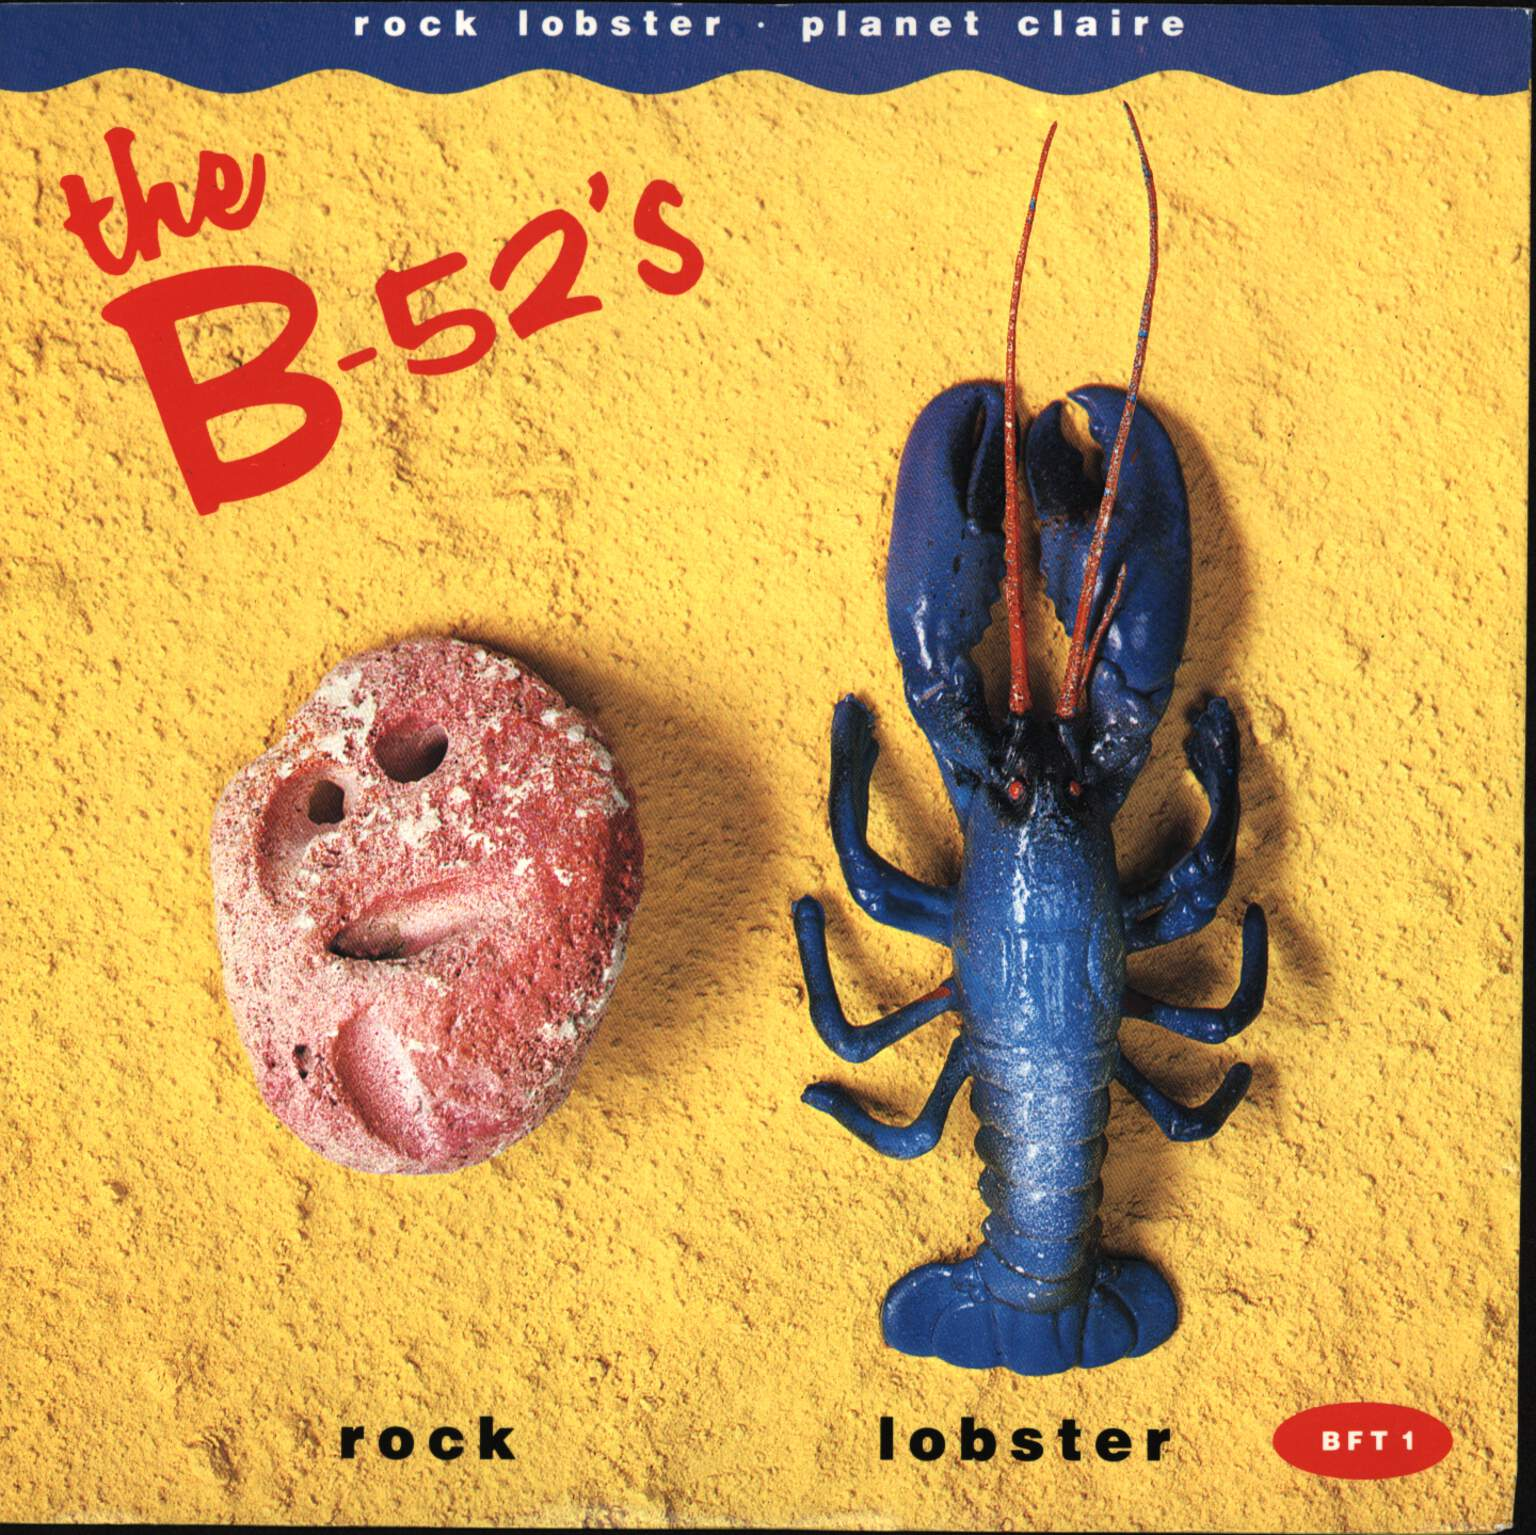 "The B-52's: Rock Lobster / Planet Claire, 7"" Single (Vinyl)"